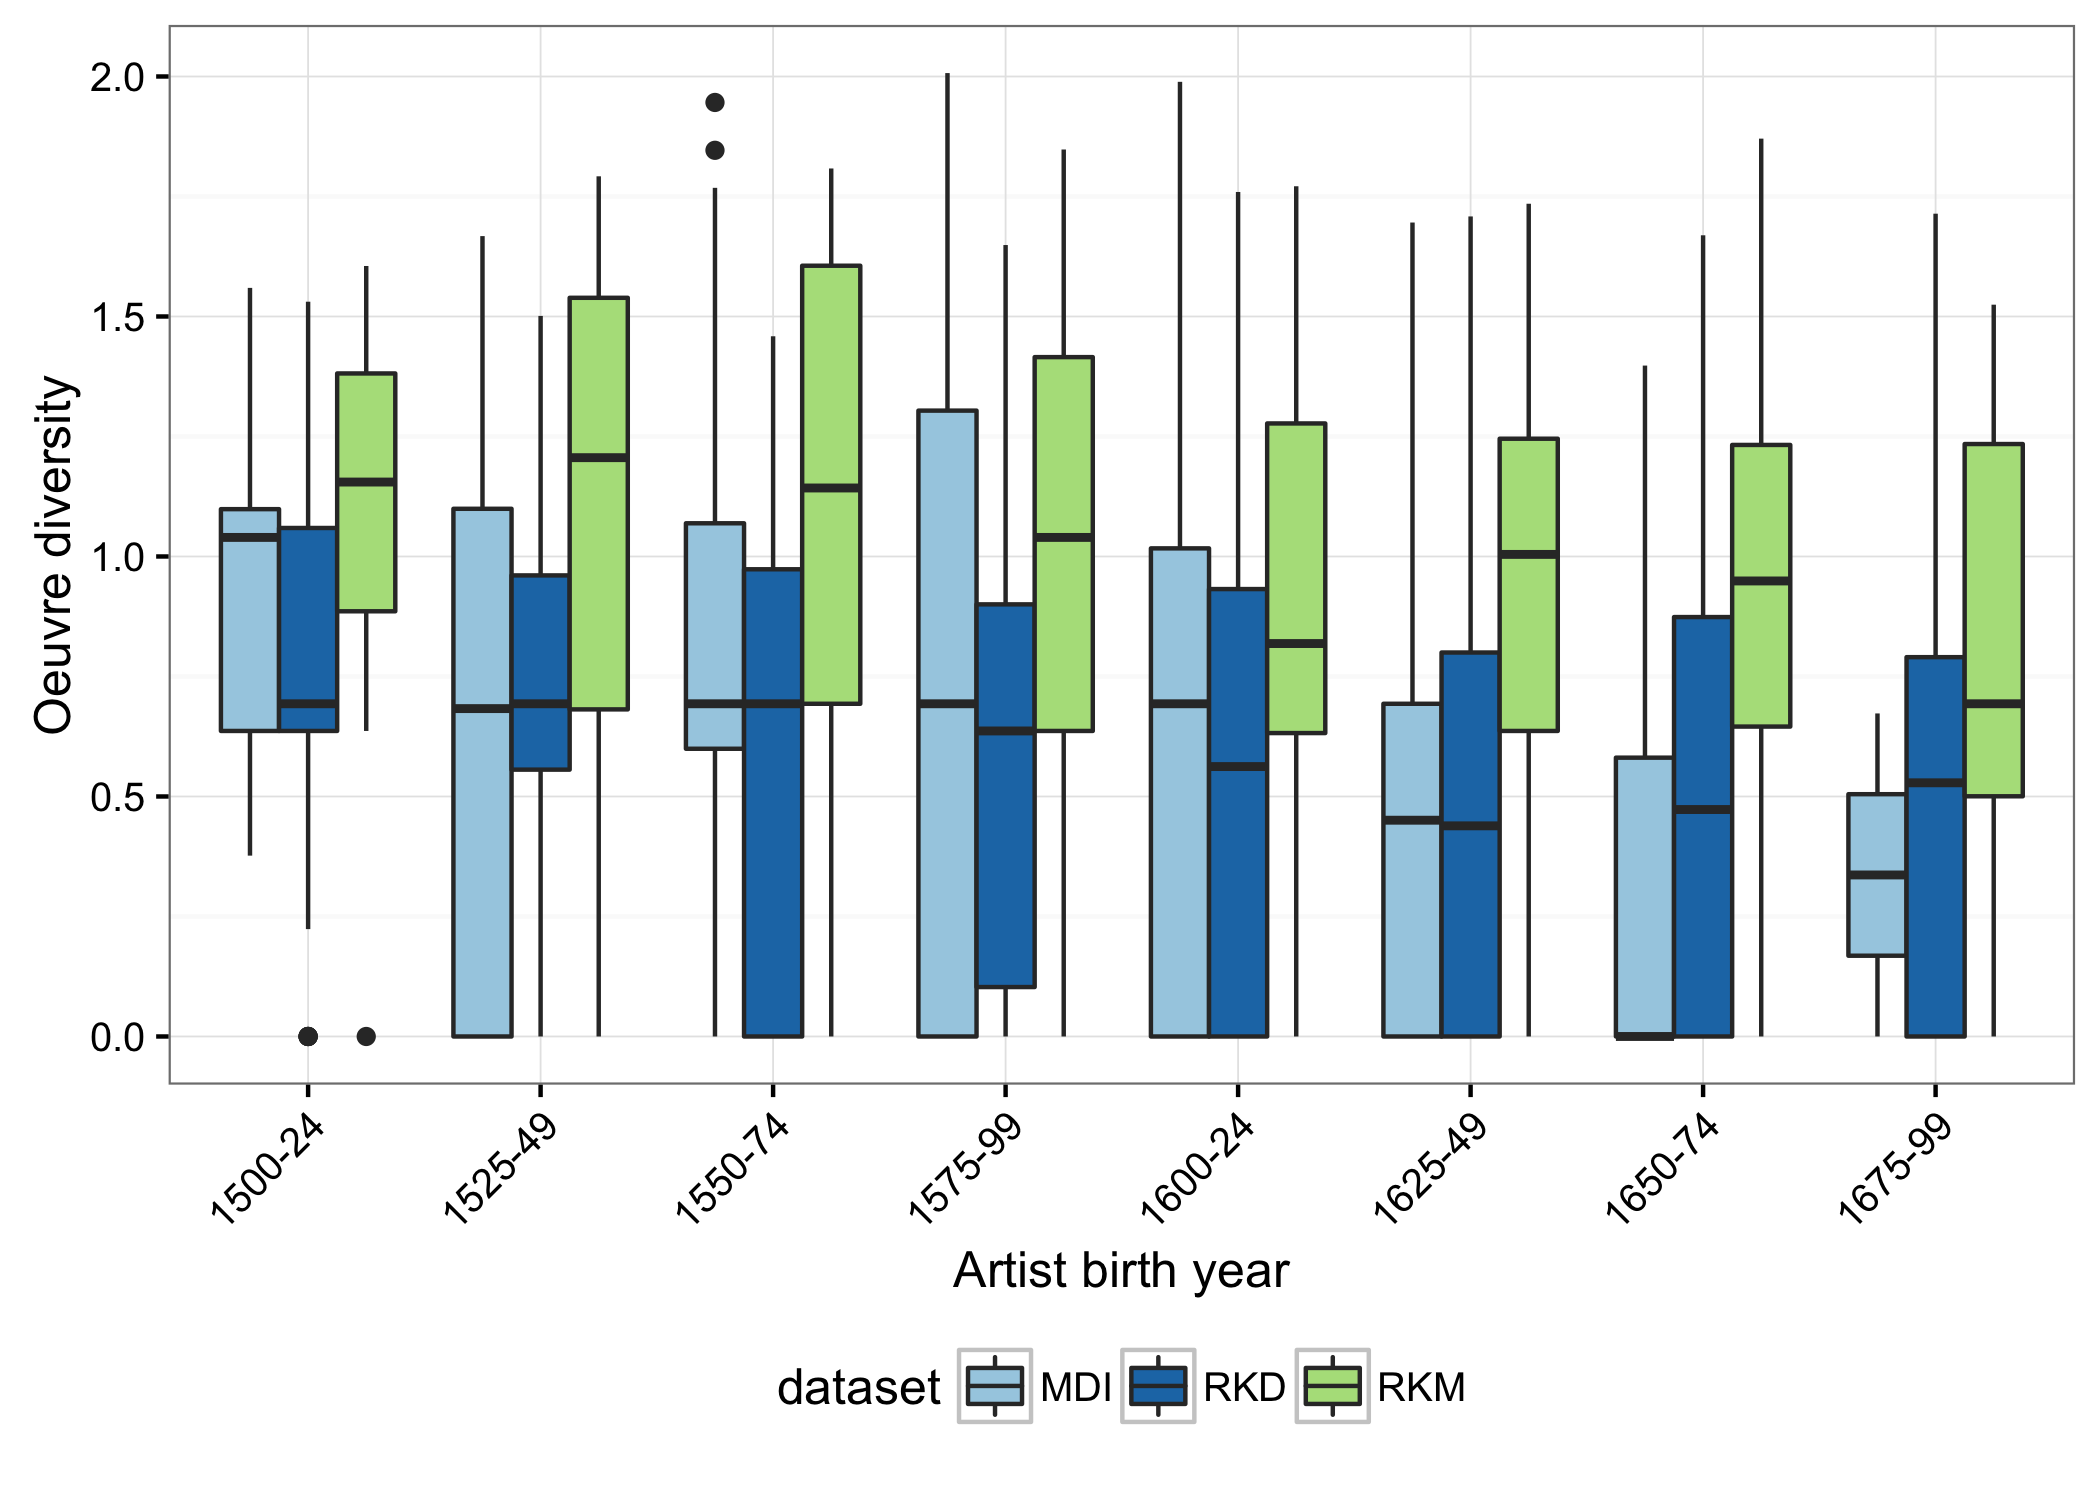 Figure The oeuvre diversity ranges of painters (Montias and RKD datasets) and printmakers (RKM dataset) born at different points between 1500 and 1700